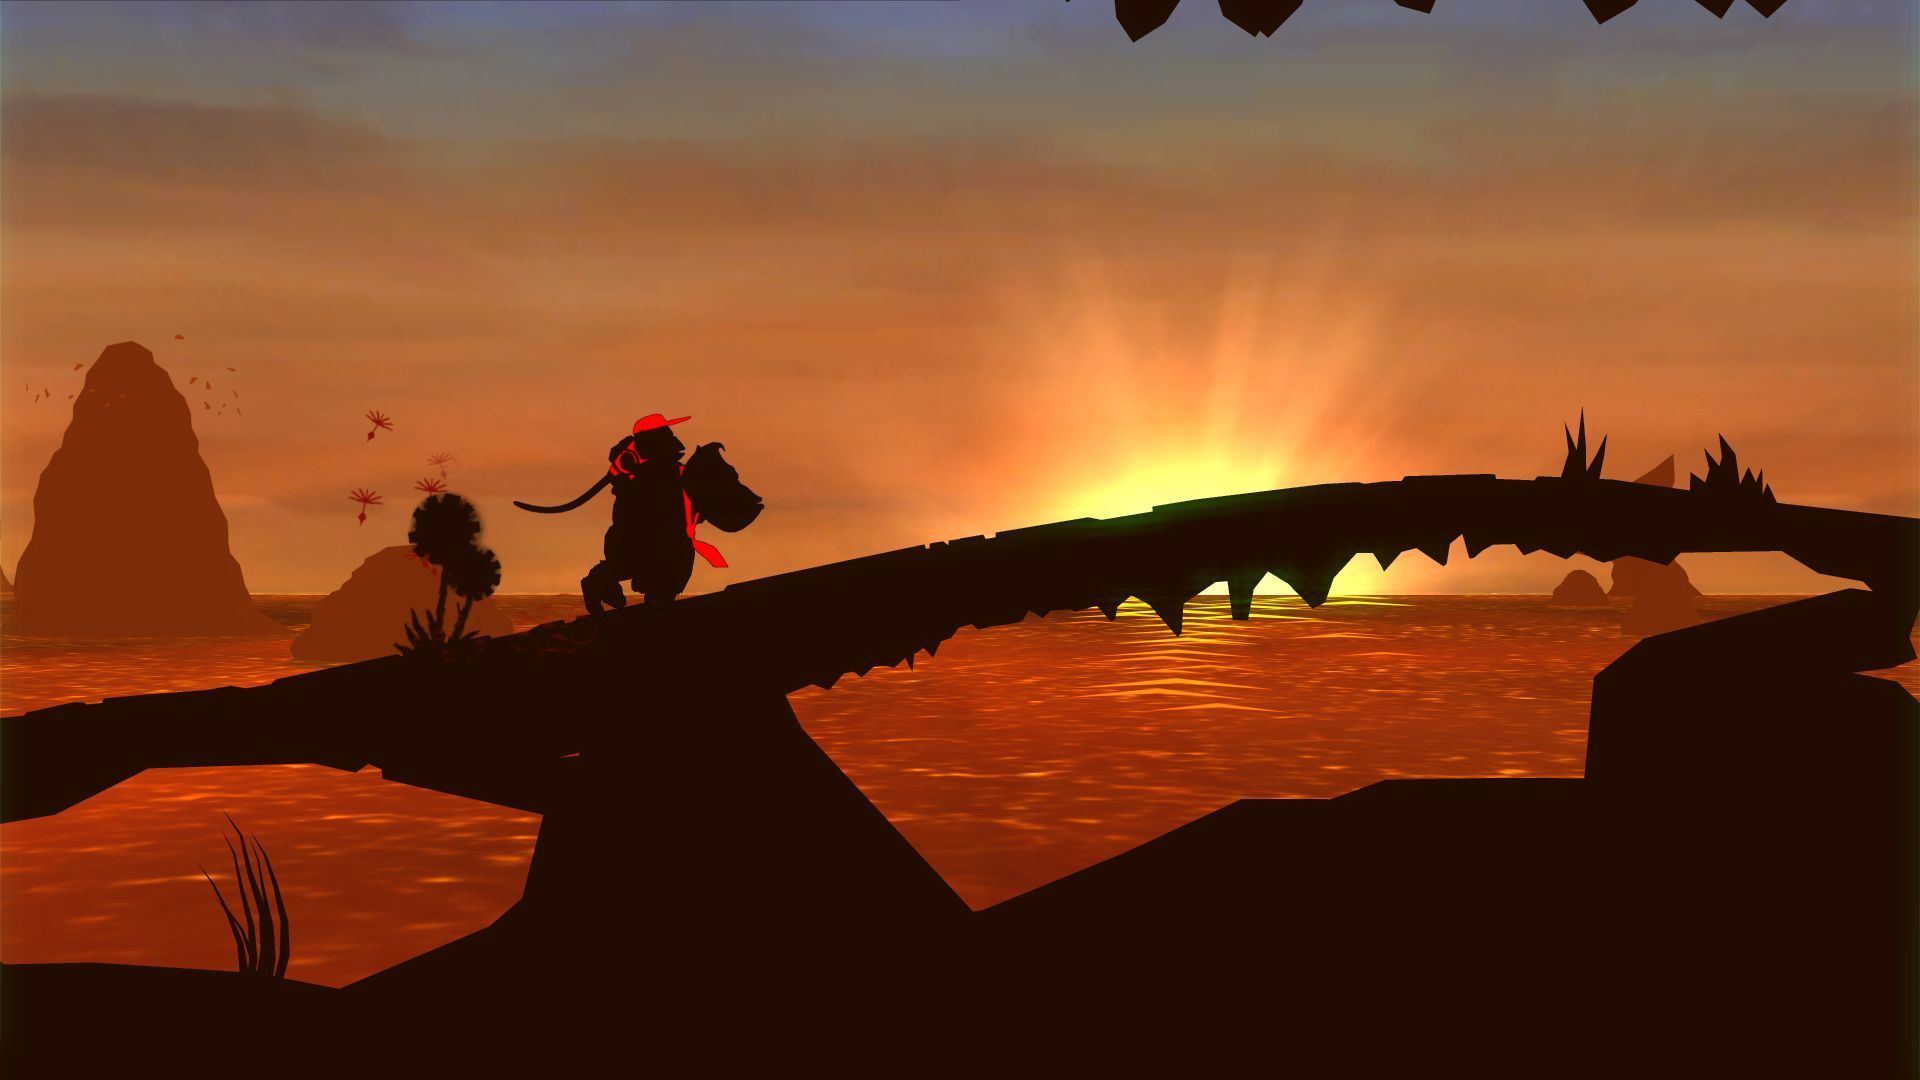 Donkey Kong Country Returns Wallpapers Donkey Kong Country Returns Donkey Kong Country Donkey Kong